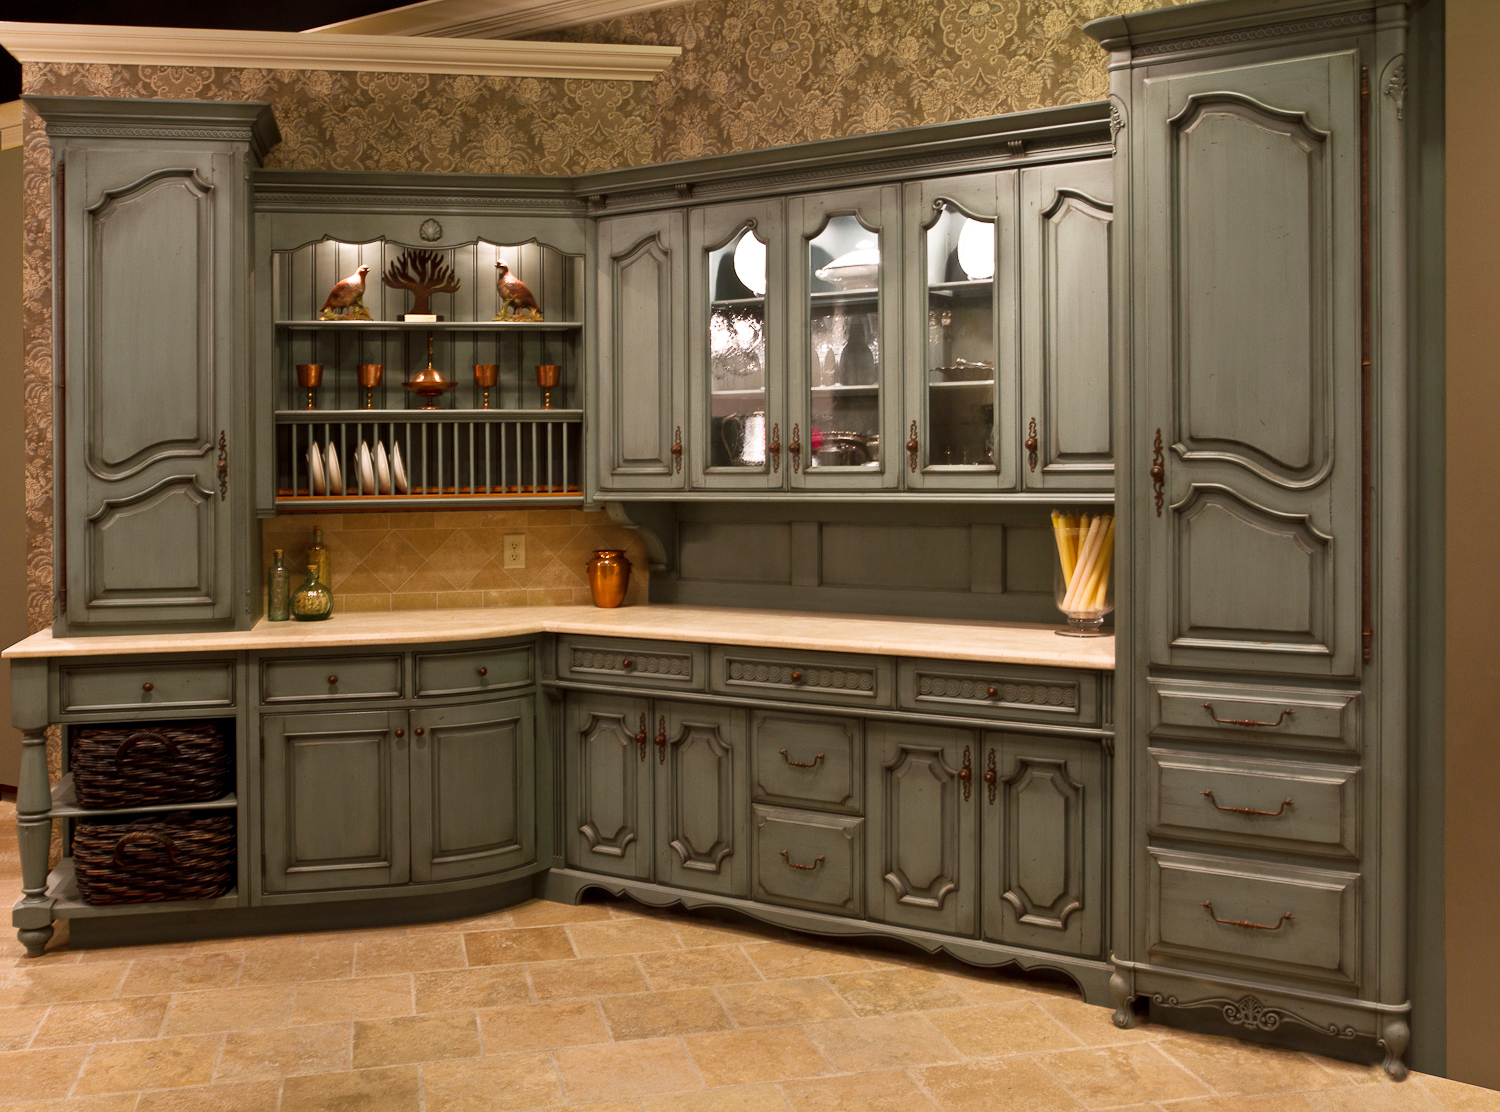 french country kitchen flooring ideas country kitchen ideas french country kitchen flooring ideas photo 11